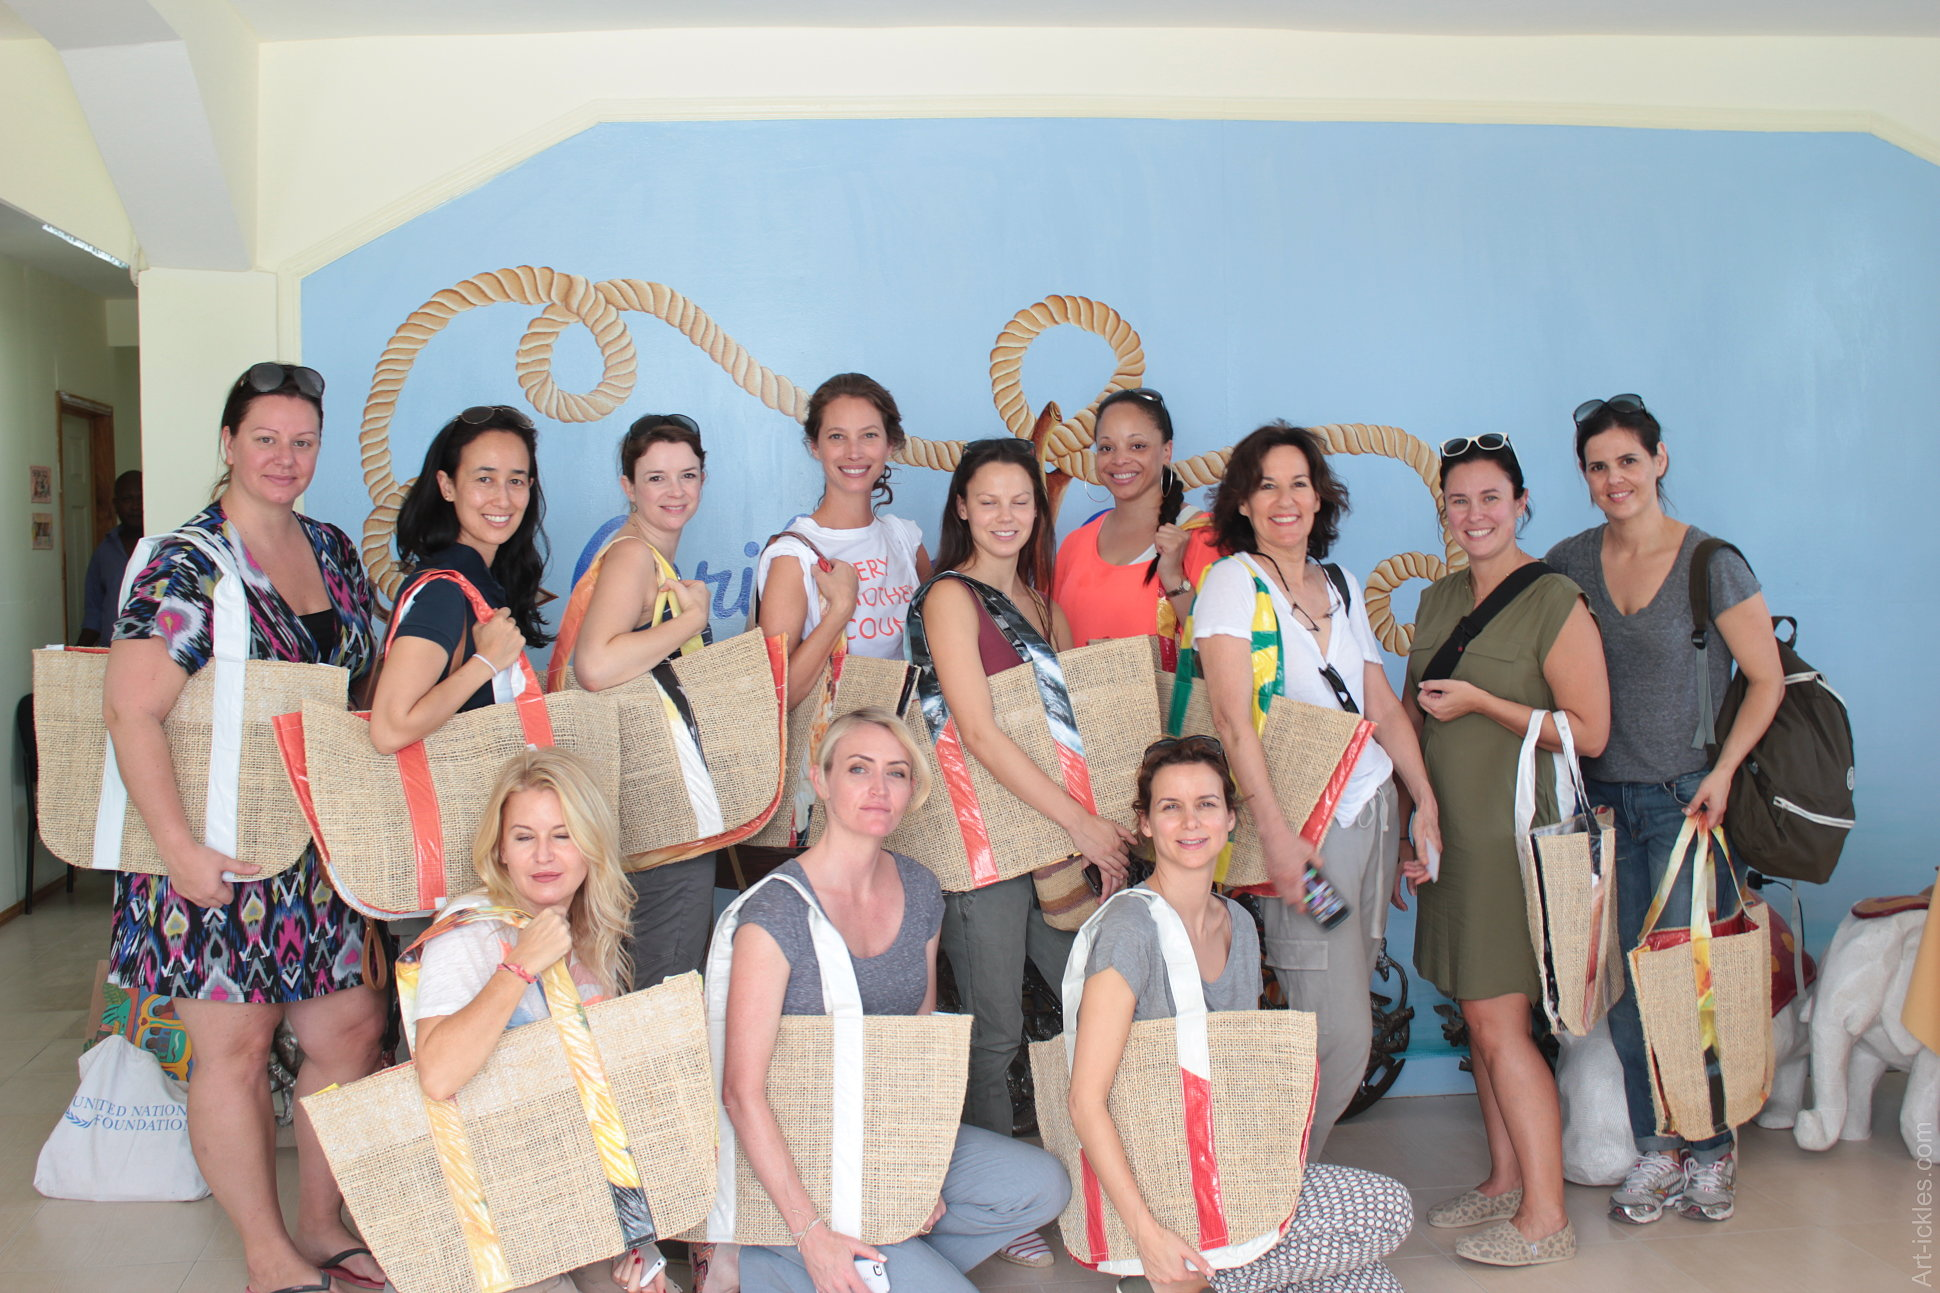 """Visit by """"Every Mother Counts"""" with supermodel Christy Turlington (center with the Every Mother Counts T-shirt) and Dwell Studio founder Christiane Lemieux (1st left on the front row). They are showcasing a beach bag created by Caribbean Craft in locally harvested sisal and reused billboard plastic."""